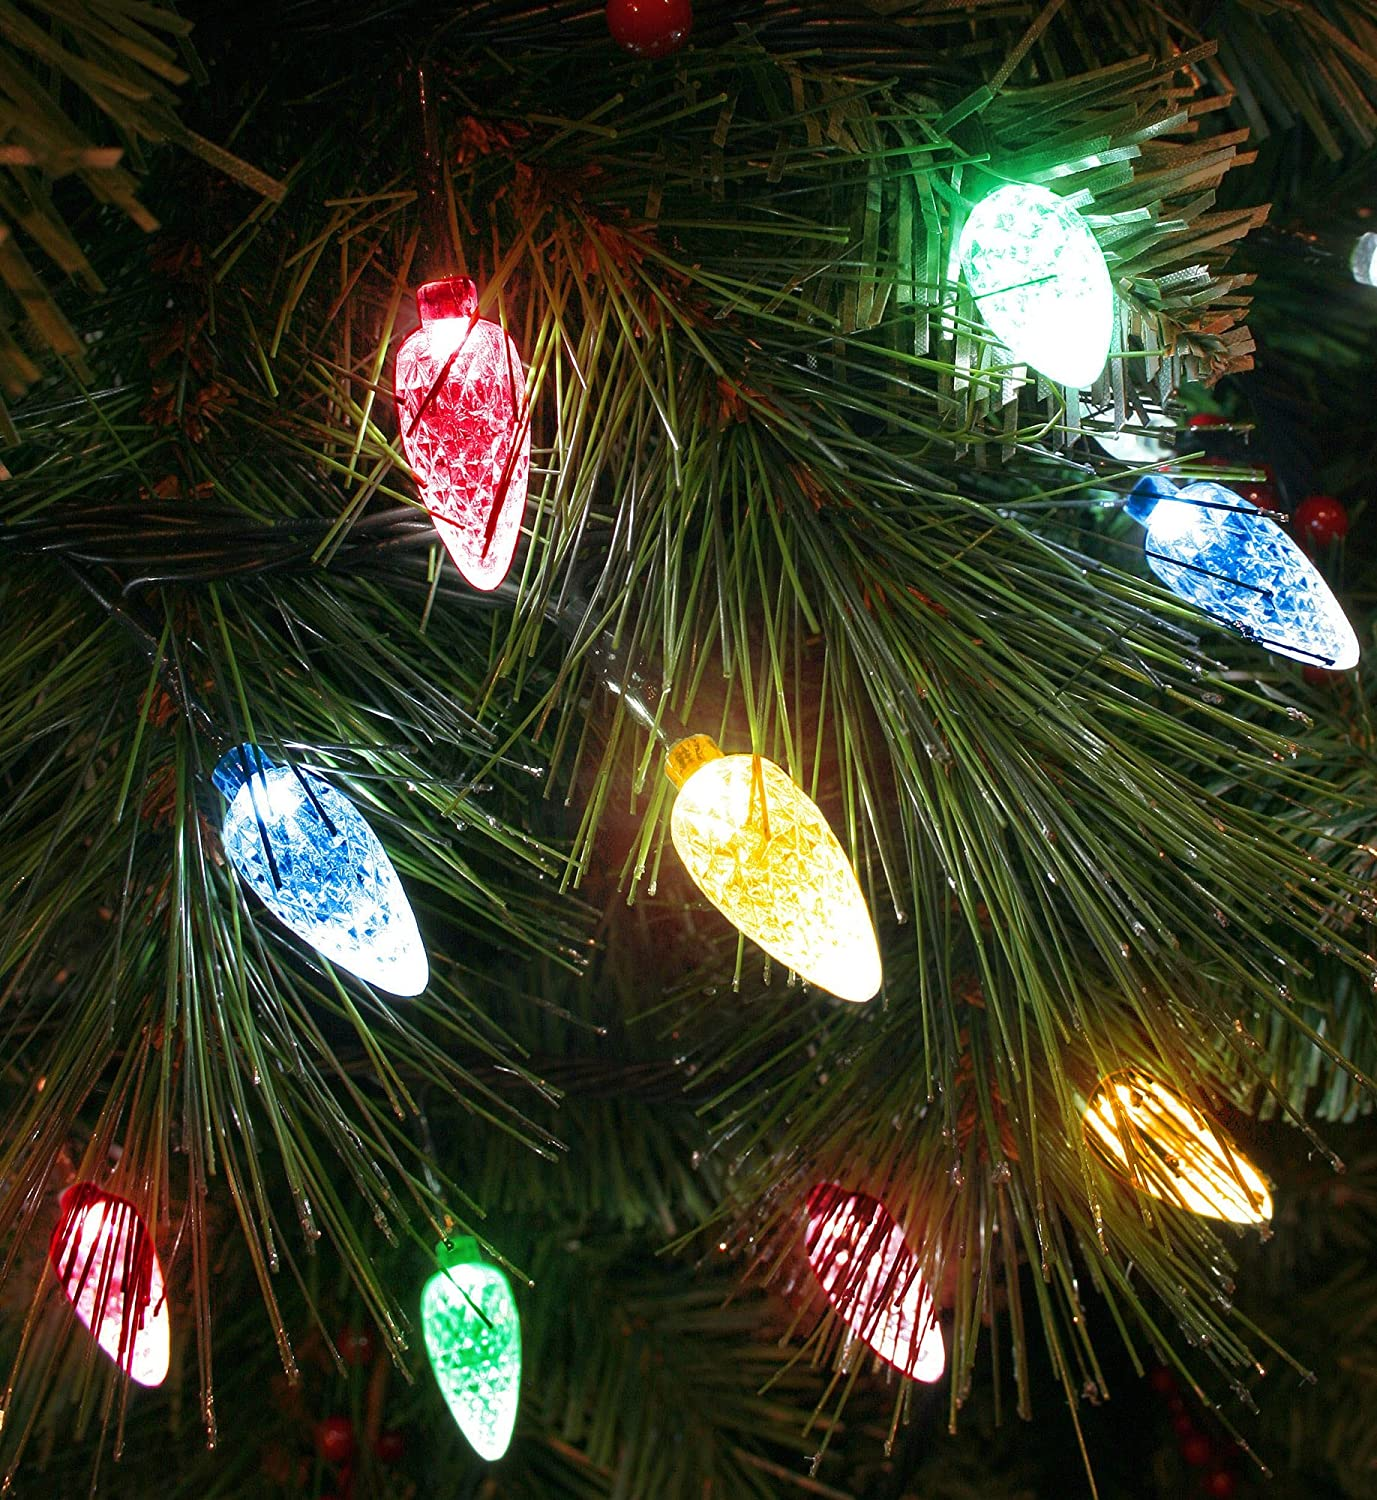 100x White LED Faceted Cone Light Set   Indoor/Outdoor Multifunction  Christmas Tree Lights   8264GW: Amazon.co.uk: Lighting